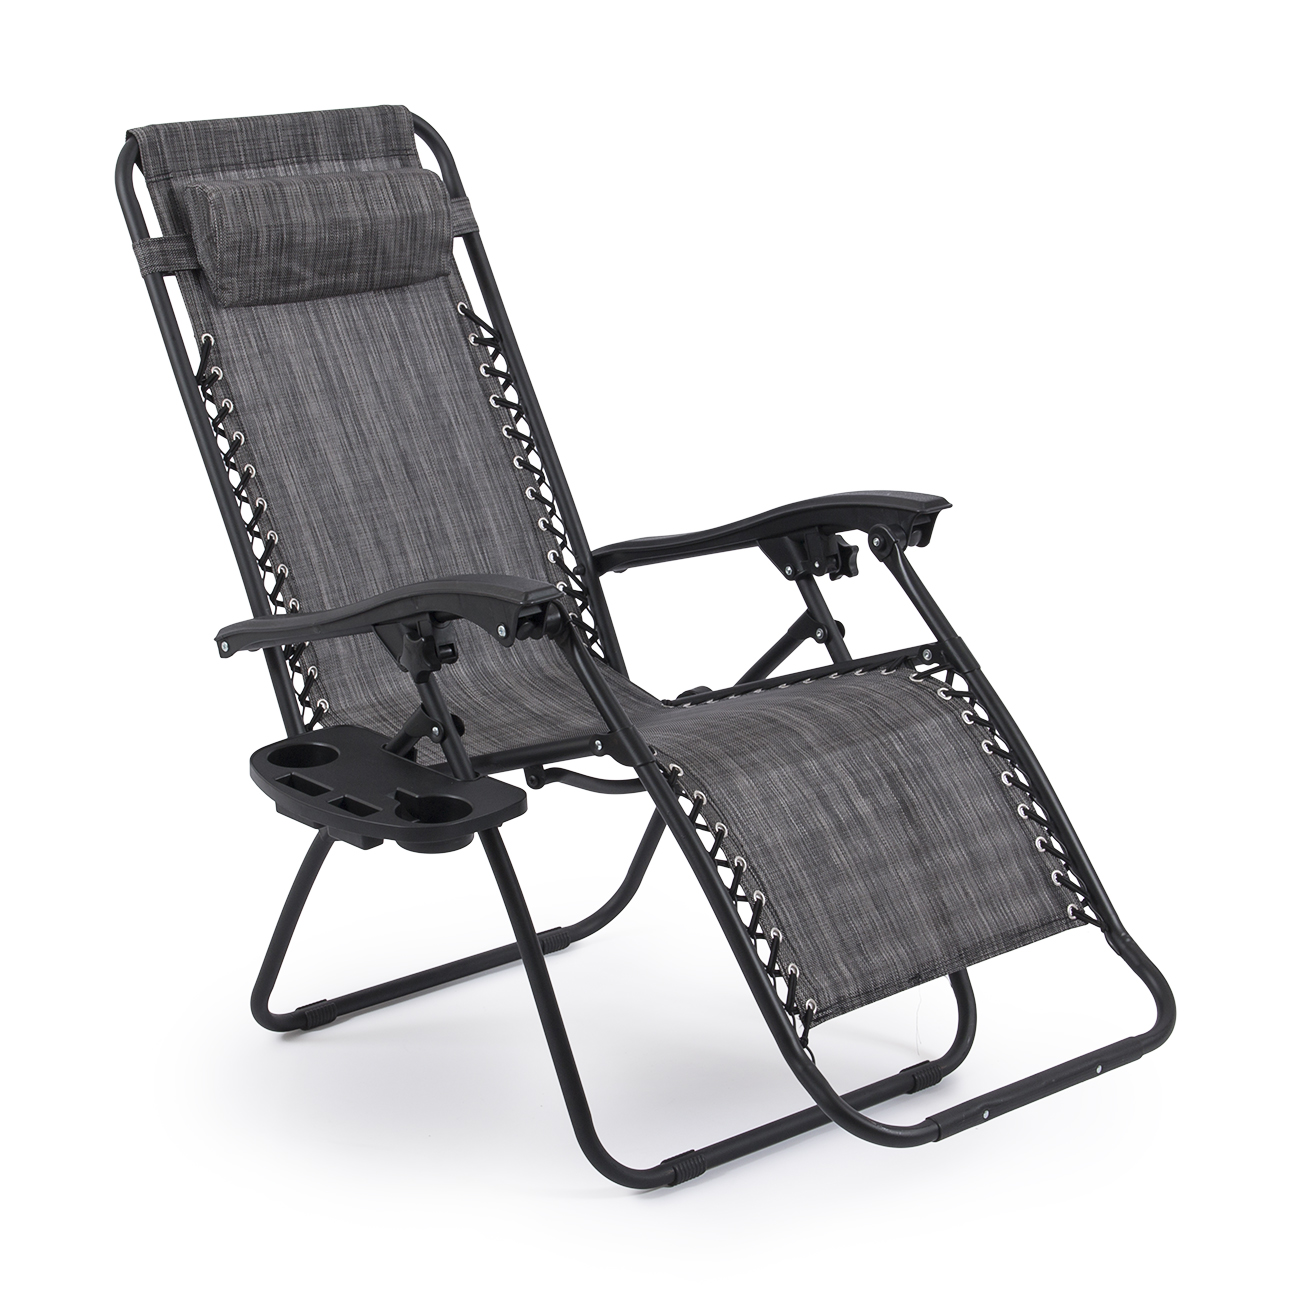 Lightweight Folding Beach Lounge Chair 2 Lounge Chair Outdoor Zero Gravity Beach Patio Pool Yard